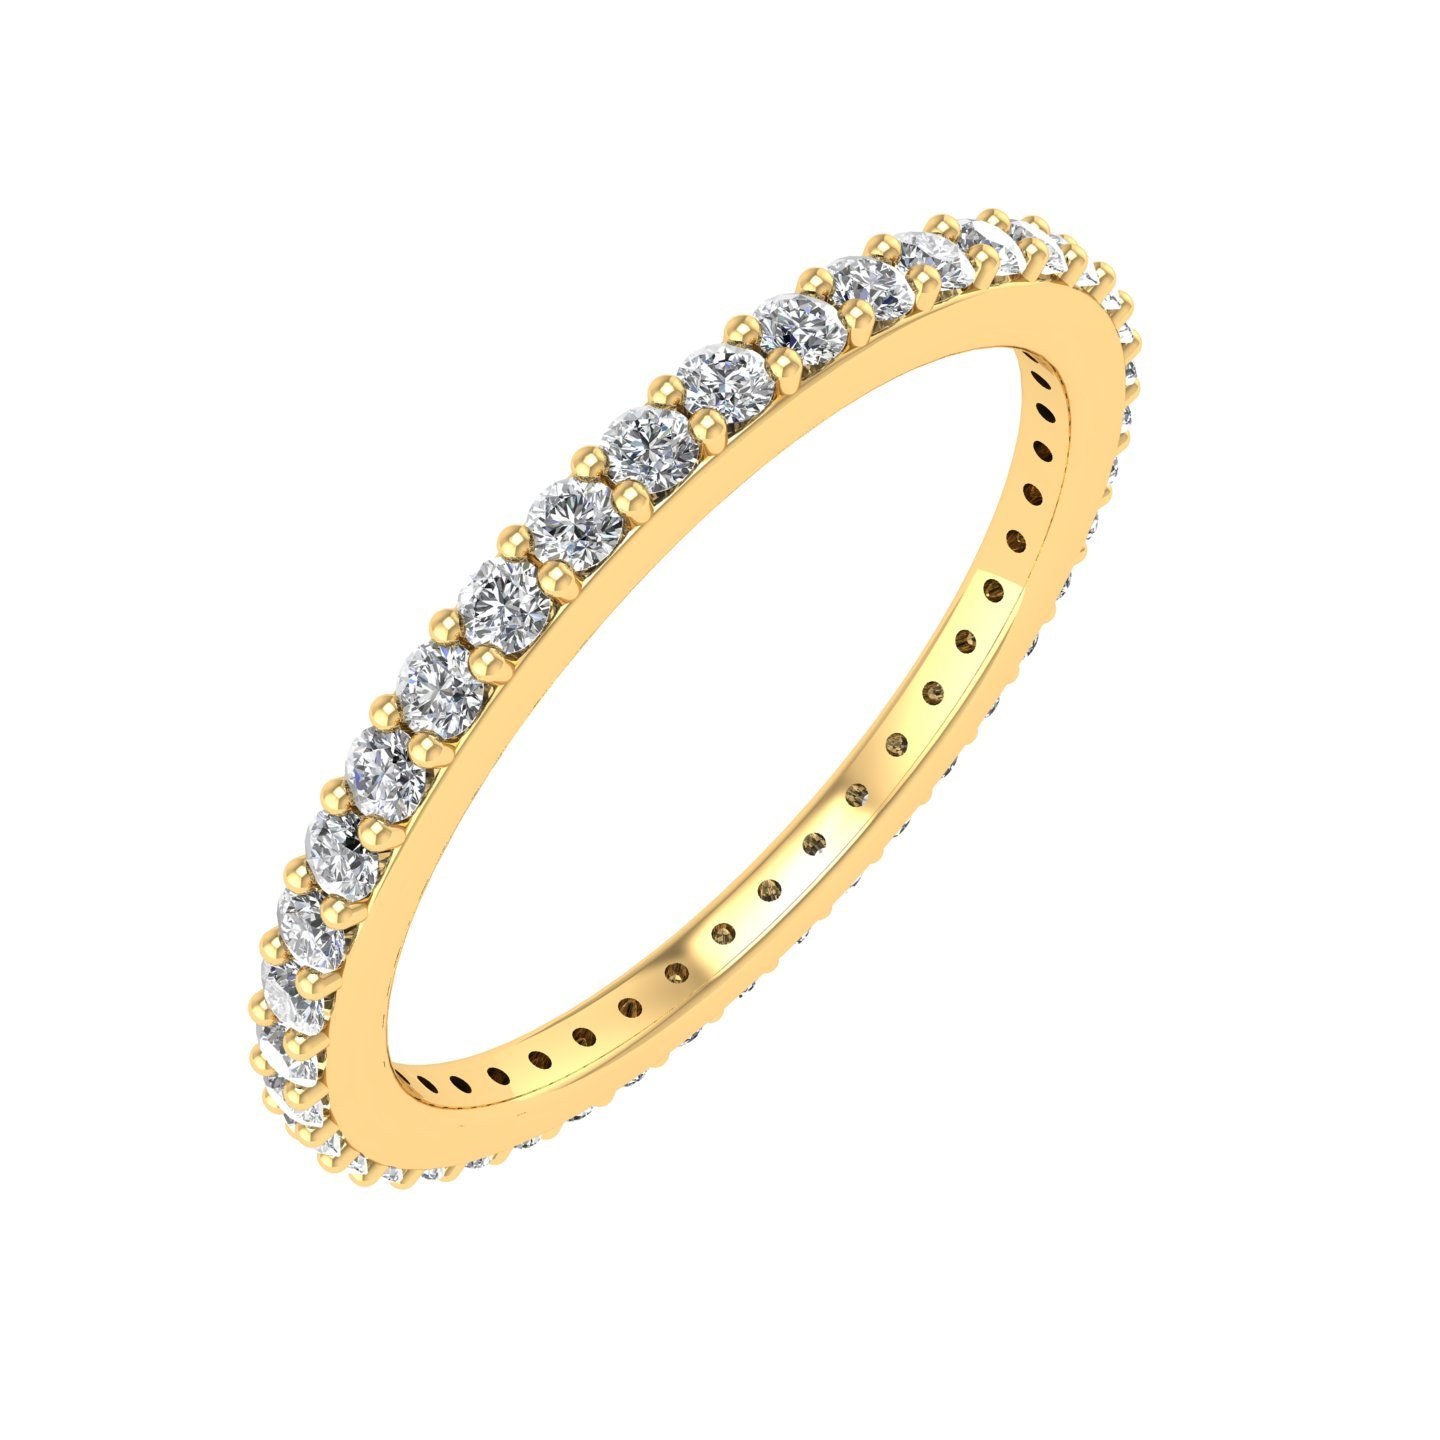 14k Yellow Gold Diamond Eternity Band Ring (0.45 Carat)